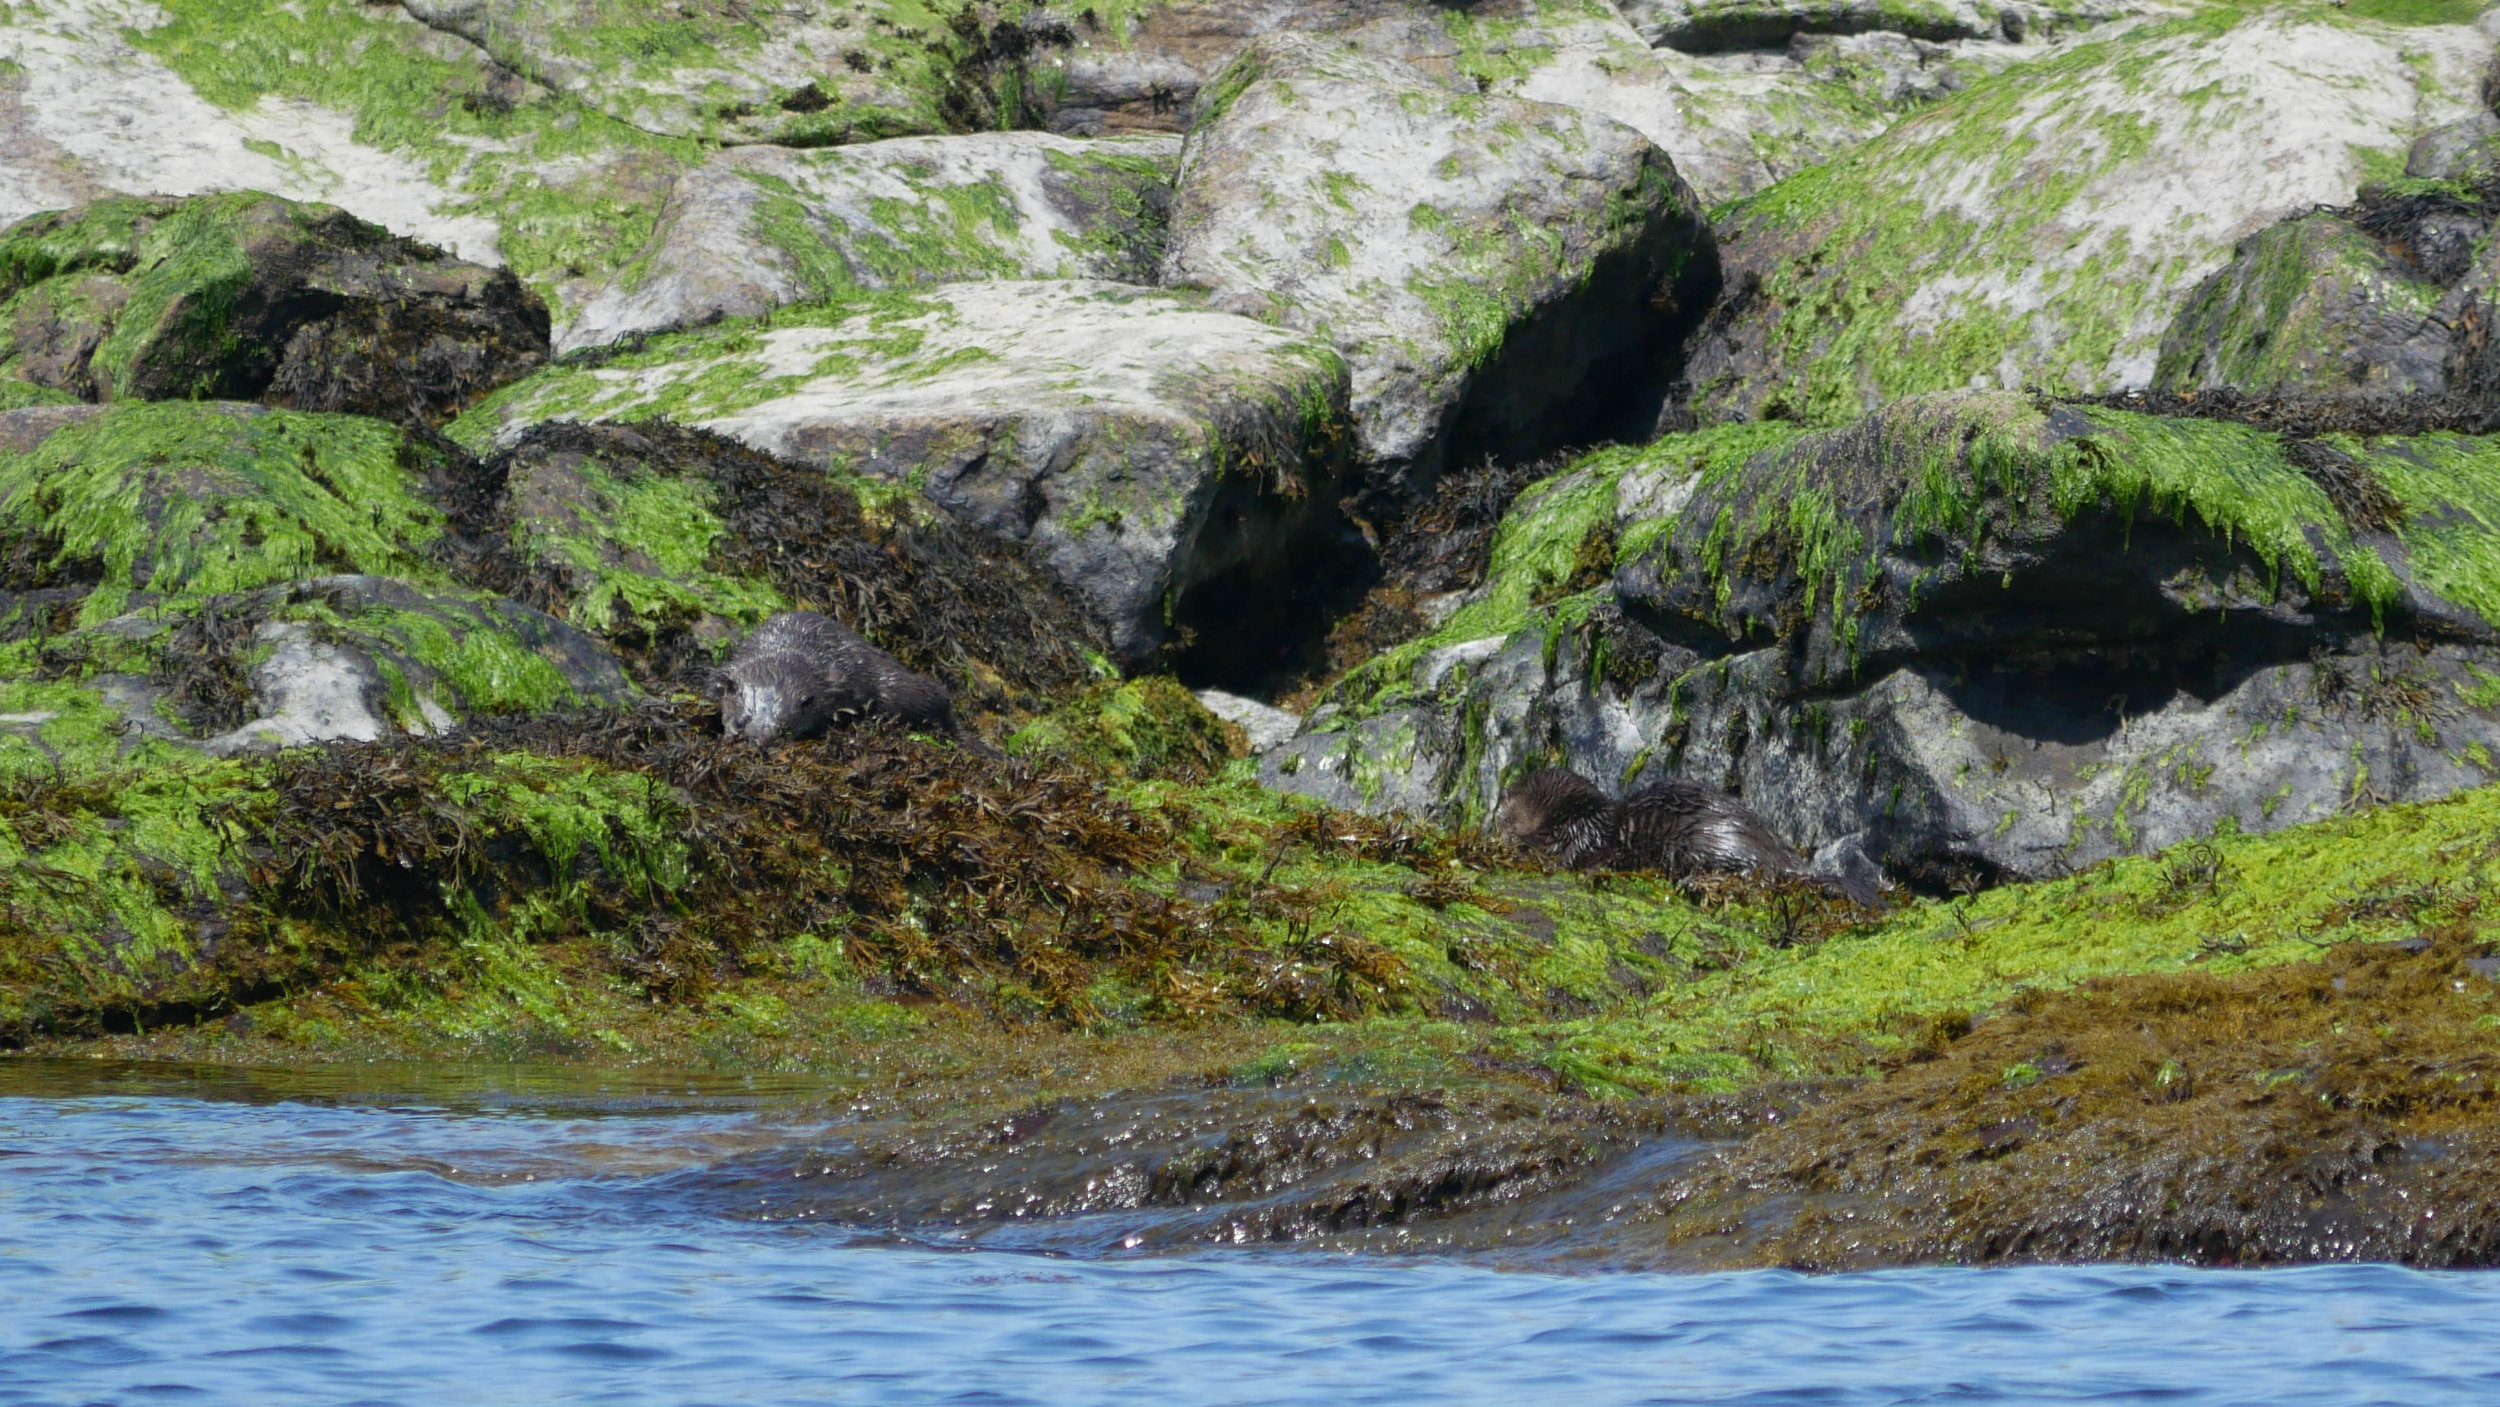 Can you spot the otters here? Photo by Val Watson.